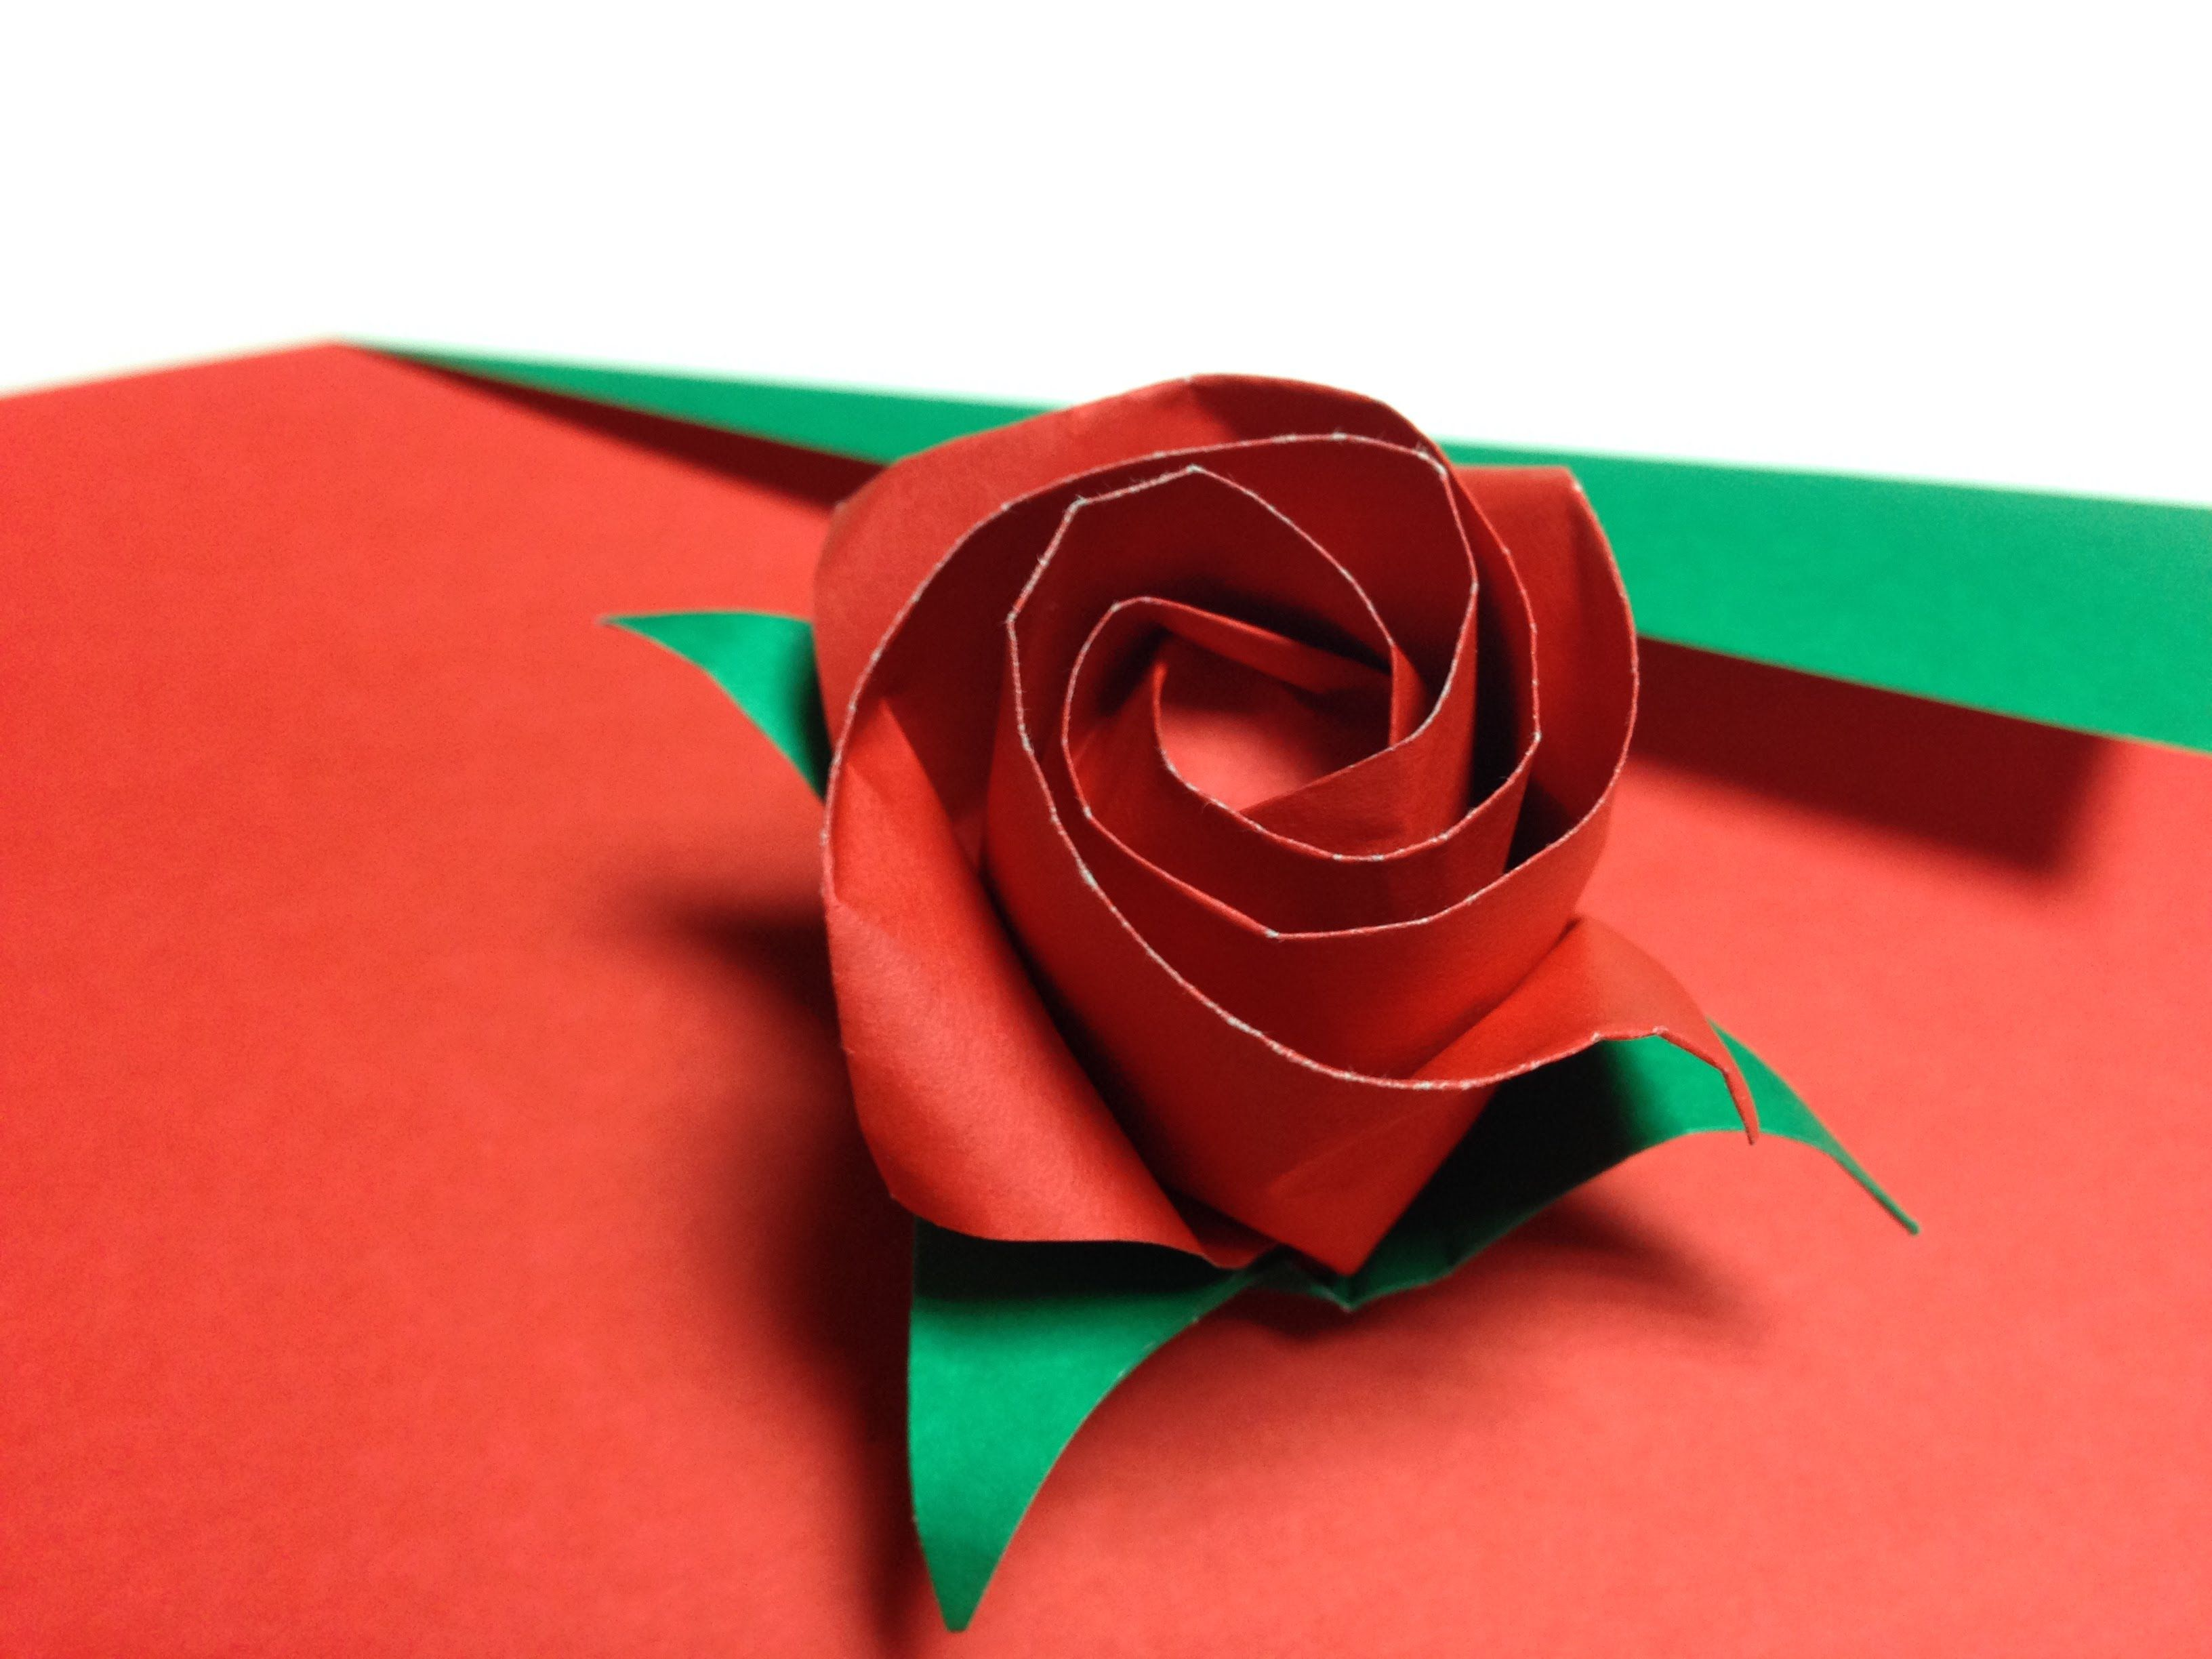 33 Only One Origami Rose33